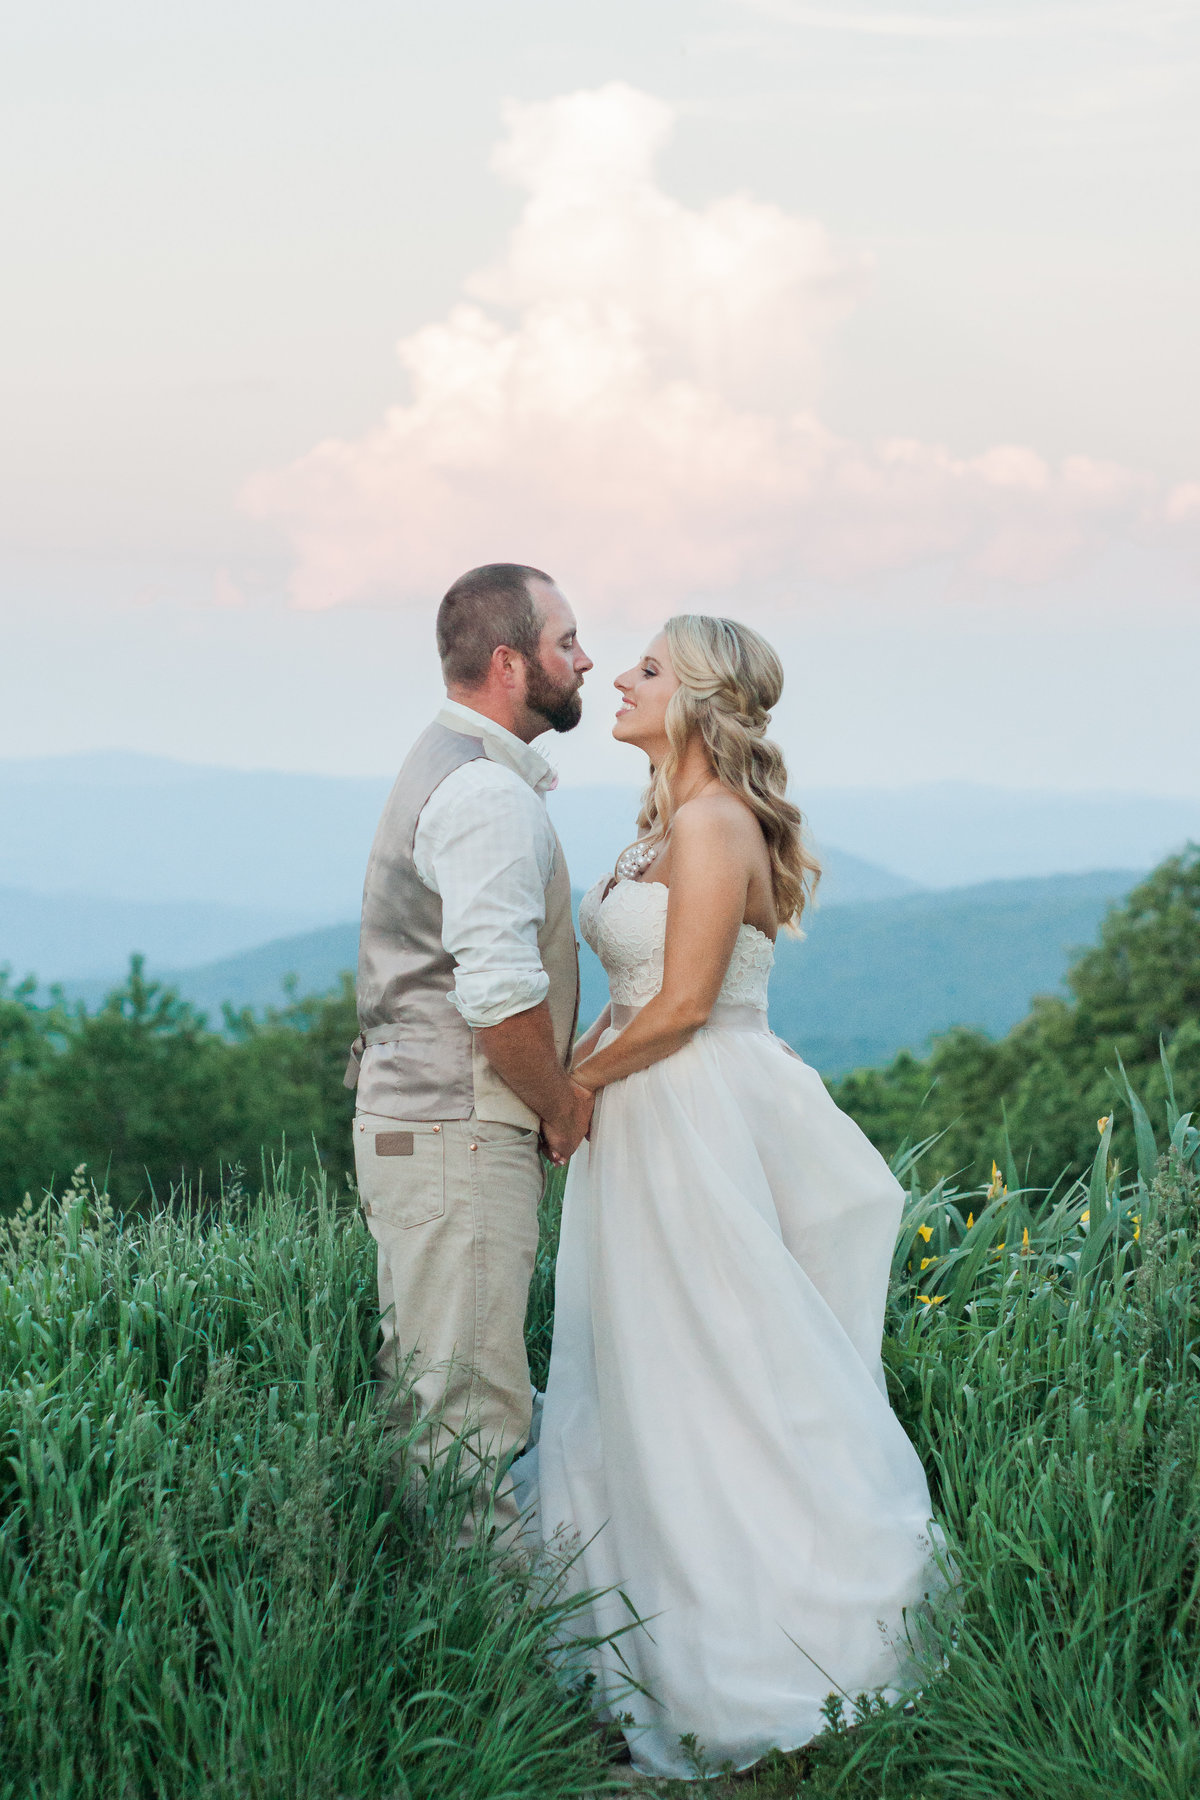 Outdoor wedding ceremony photographed at Overlook Barn by Boone Photographer Wayfaring Wanderer. Overlook Barn is a gorgeous venue on Beech Mountain.